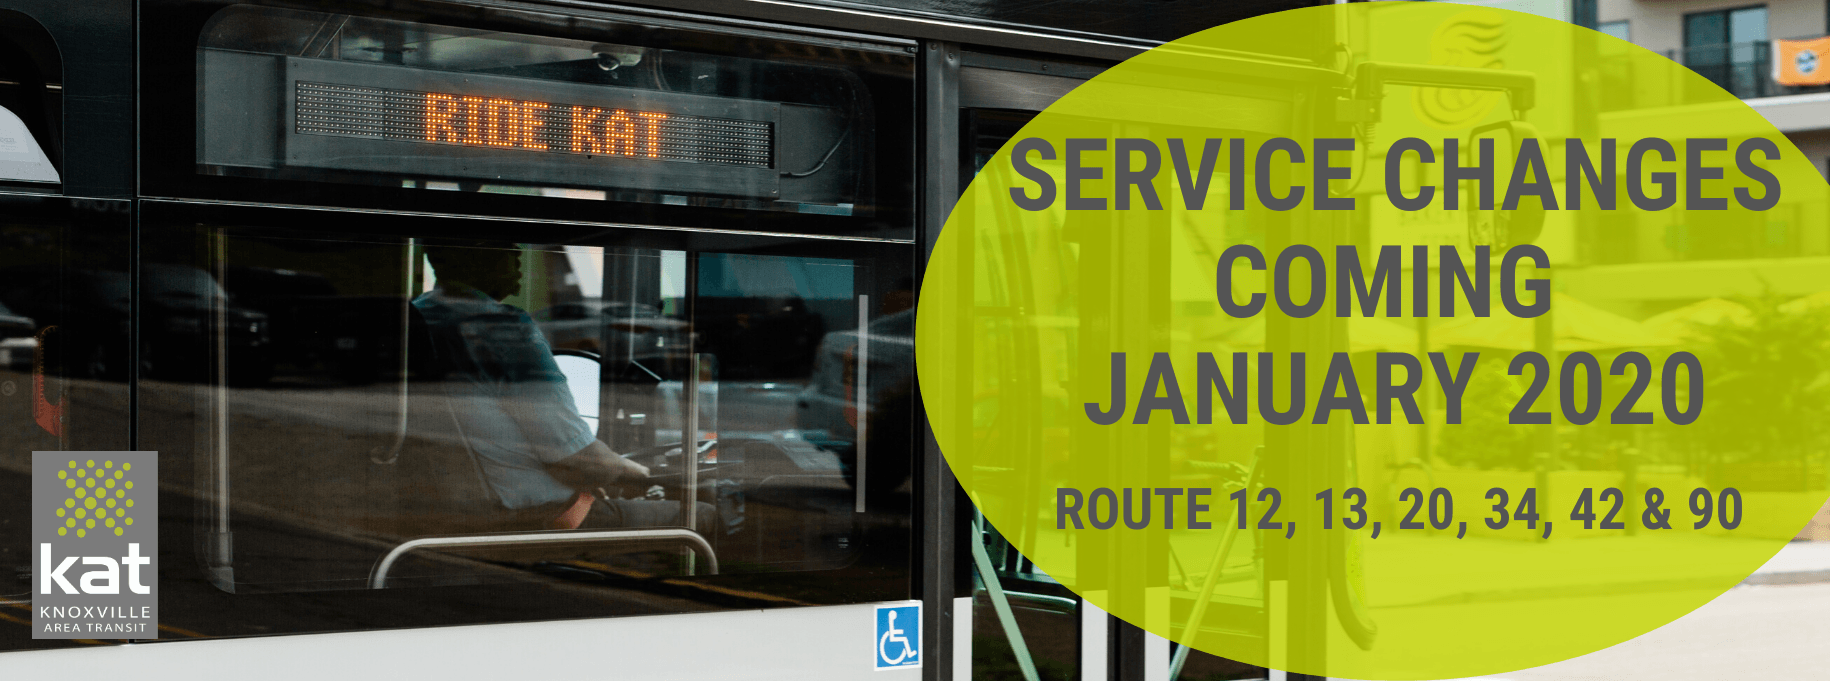 January 2020 Service Changes